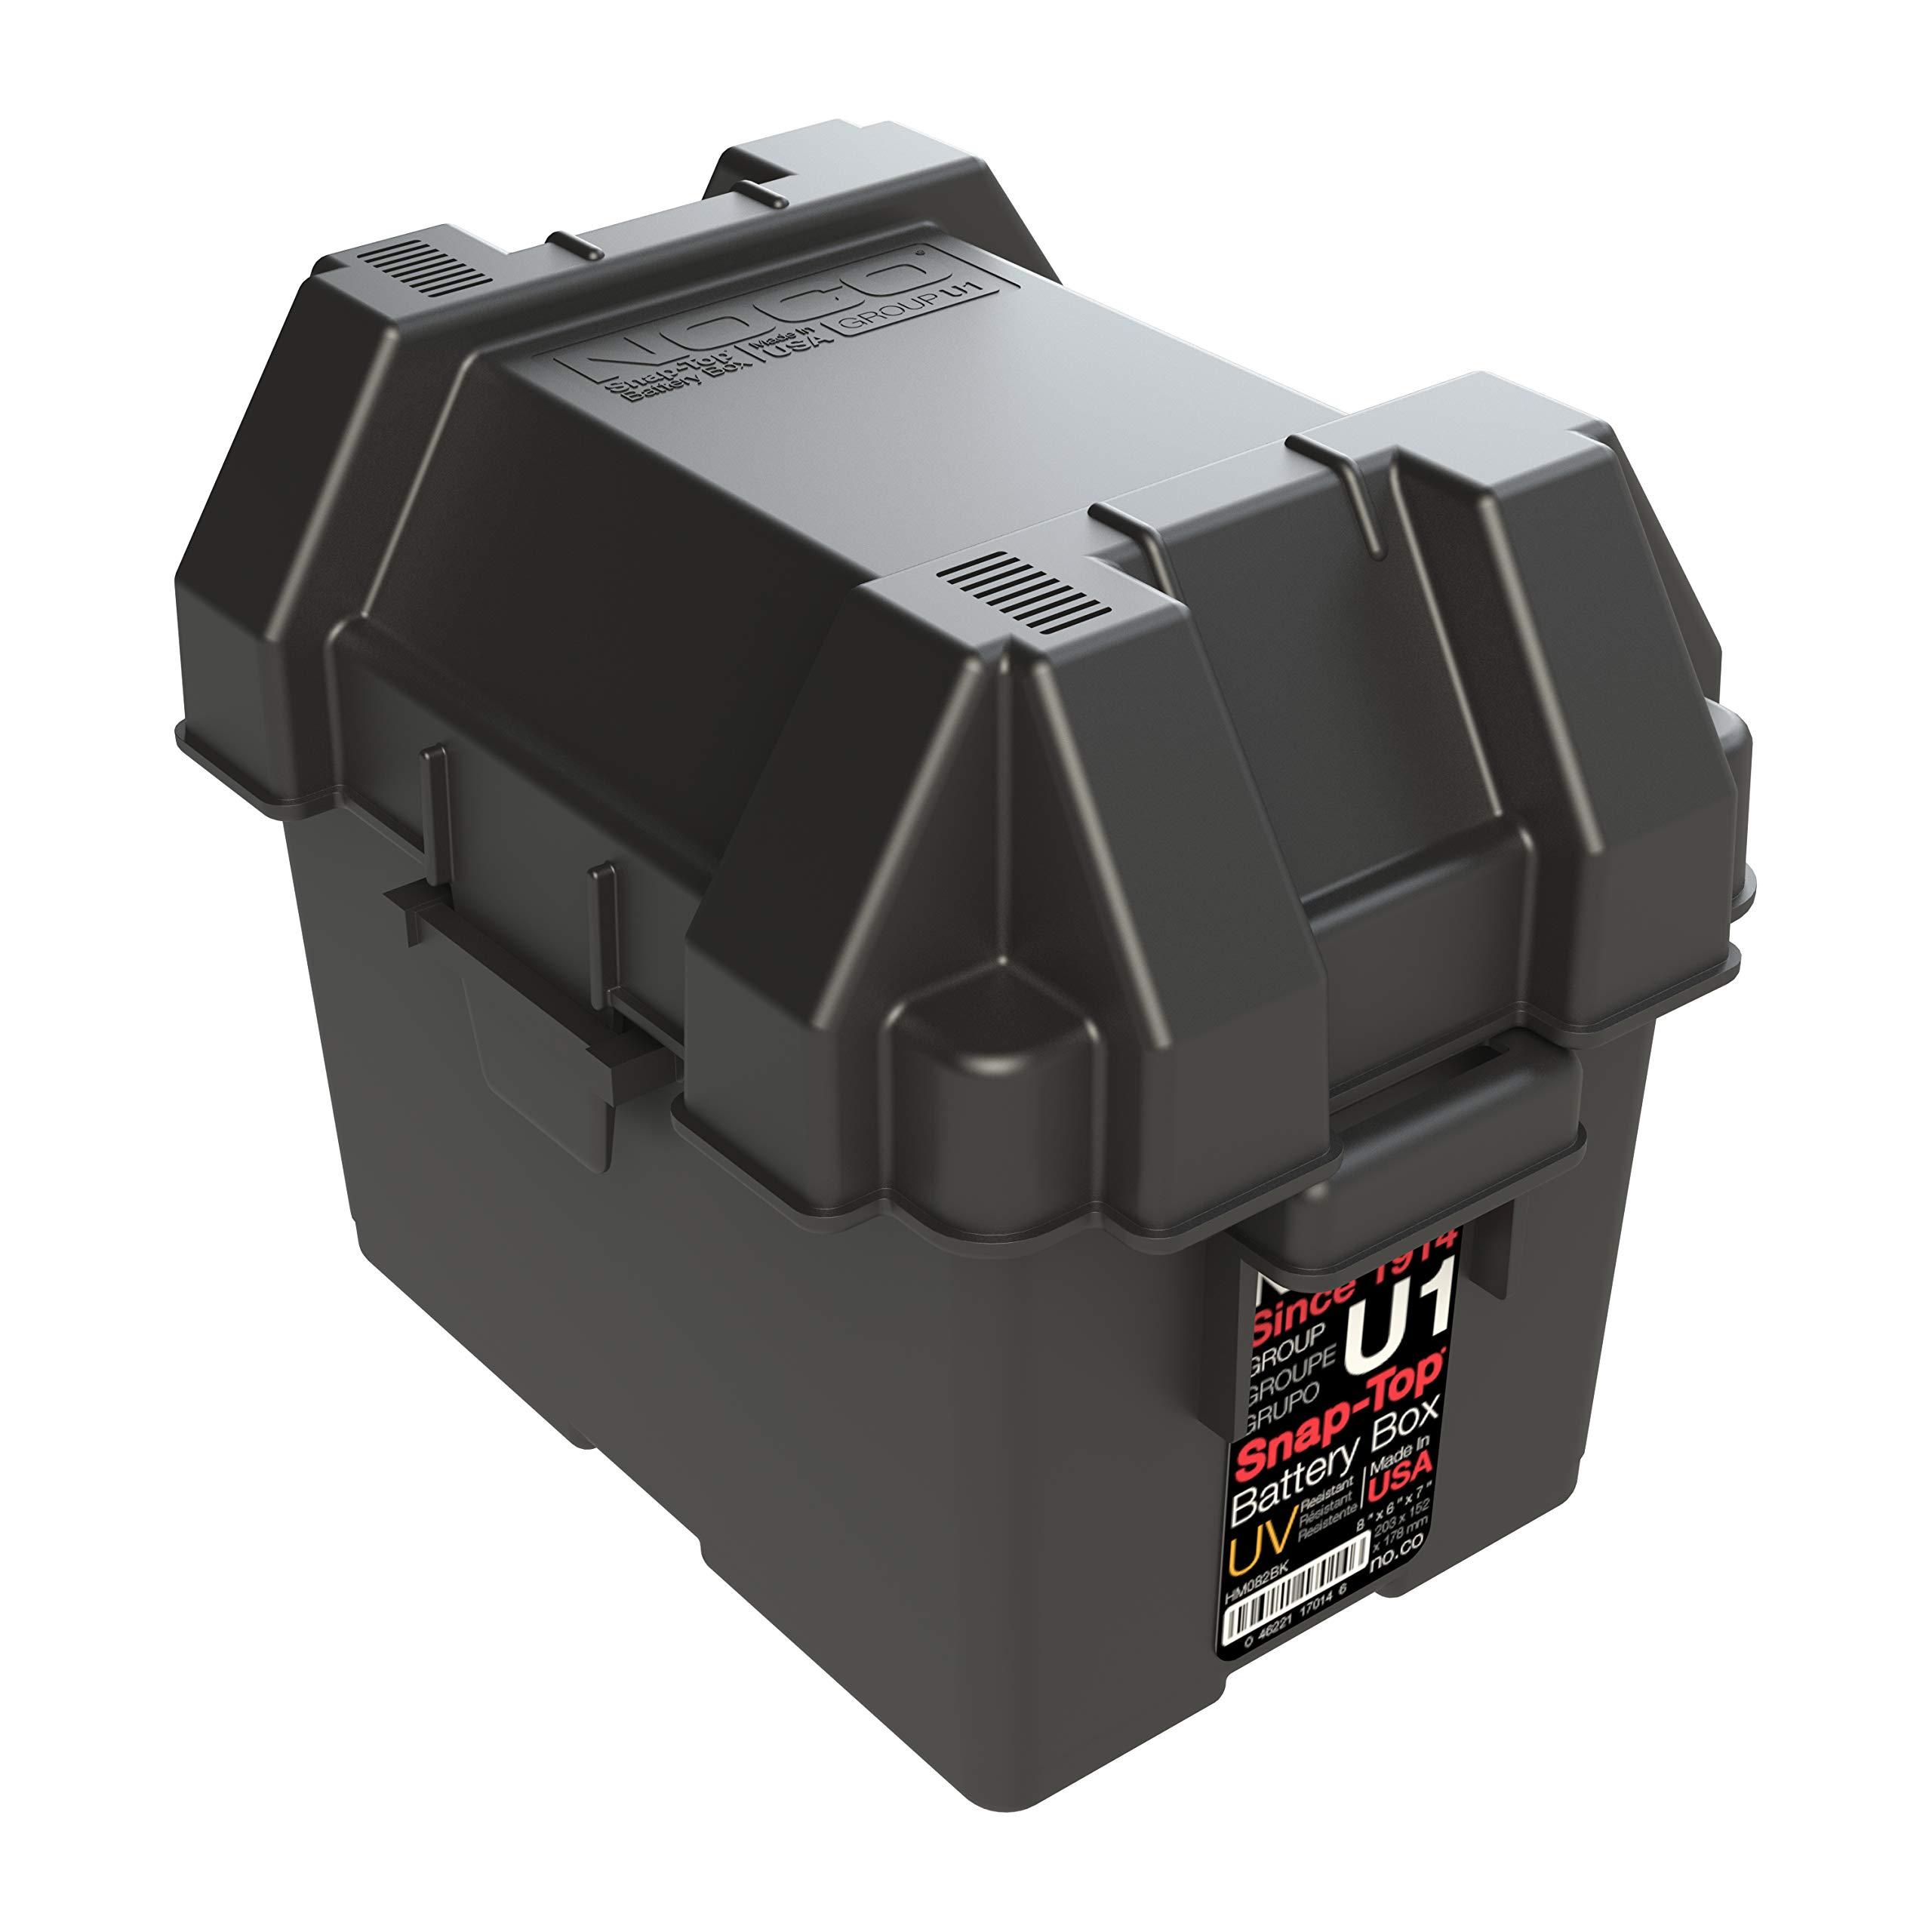 NOCO HM082BKS Group U1 Snap-Top Battery Box For Mobility And Lawn and Garden Batteries